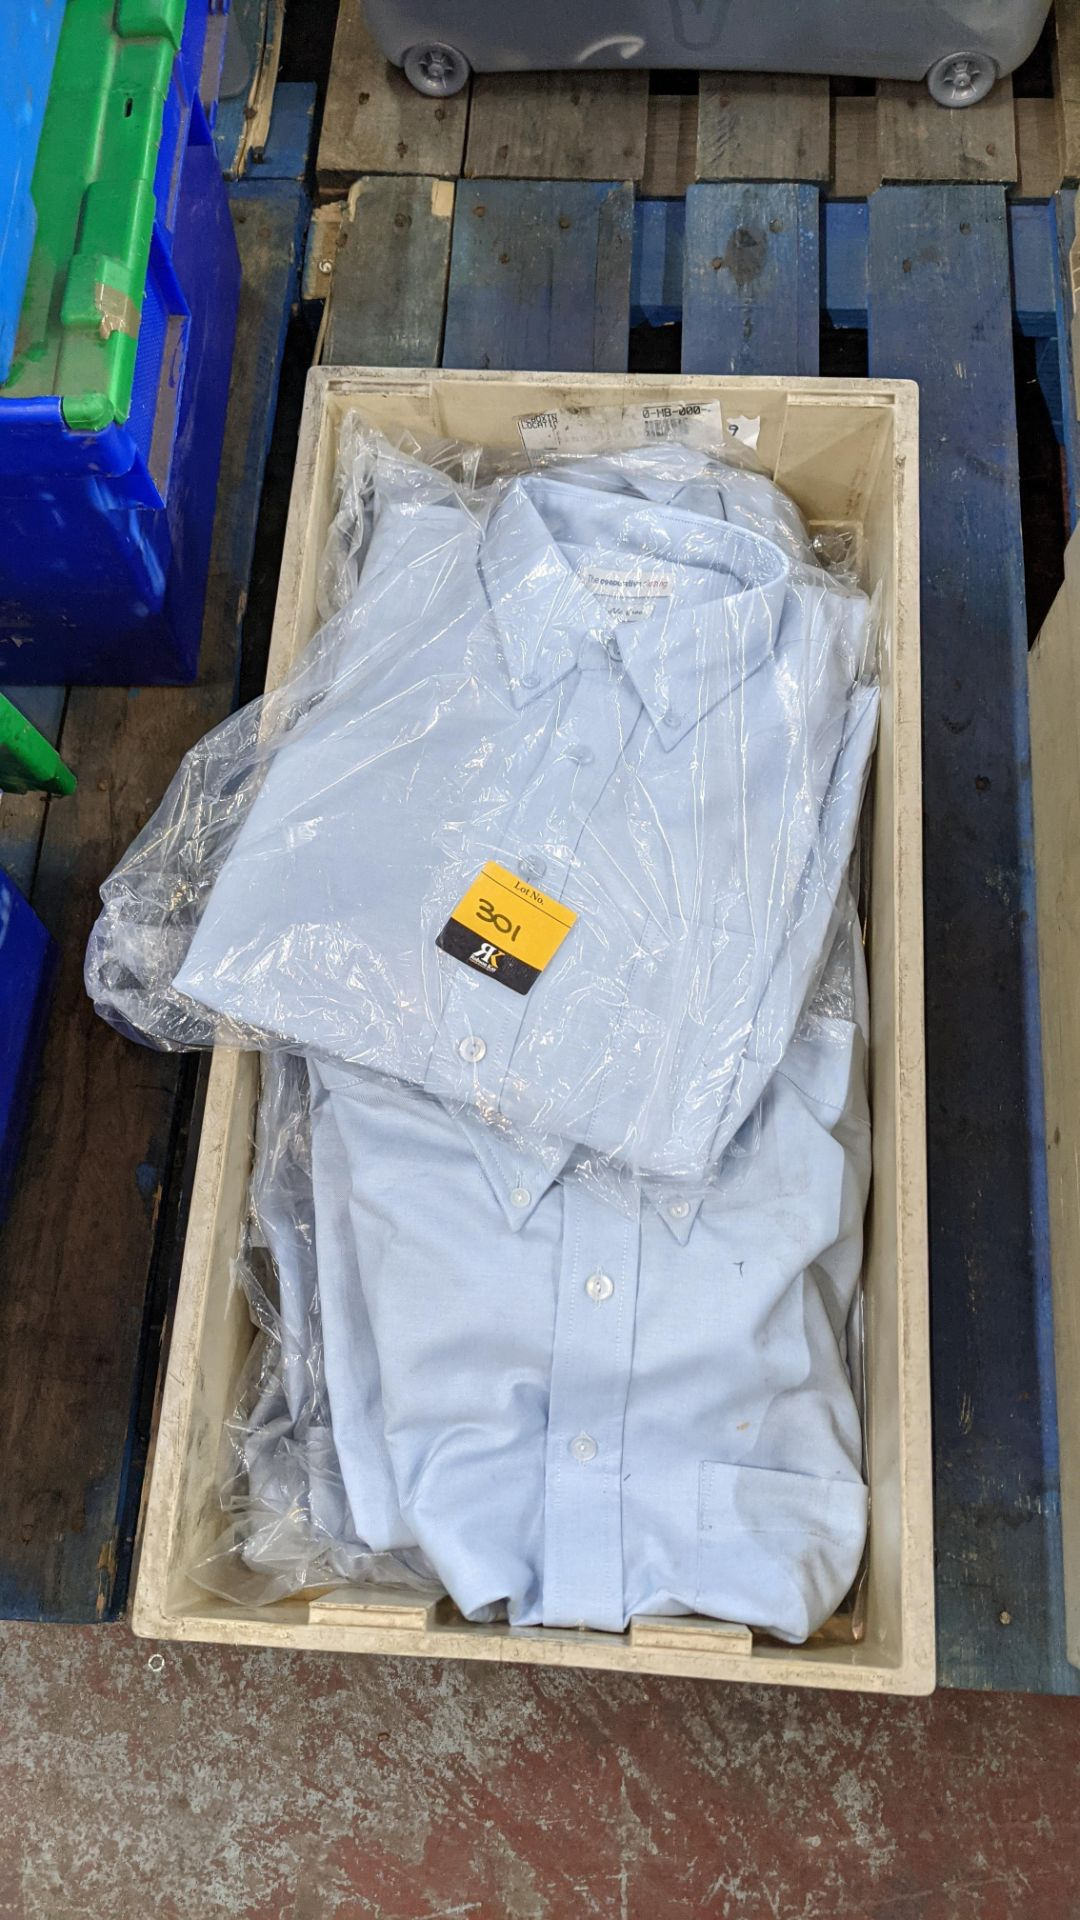 Approx 54 off blue shirts in assorted styles - the contents of 4 crates. NB crates excluded - Image 3 of 6